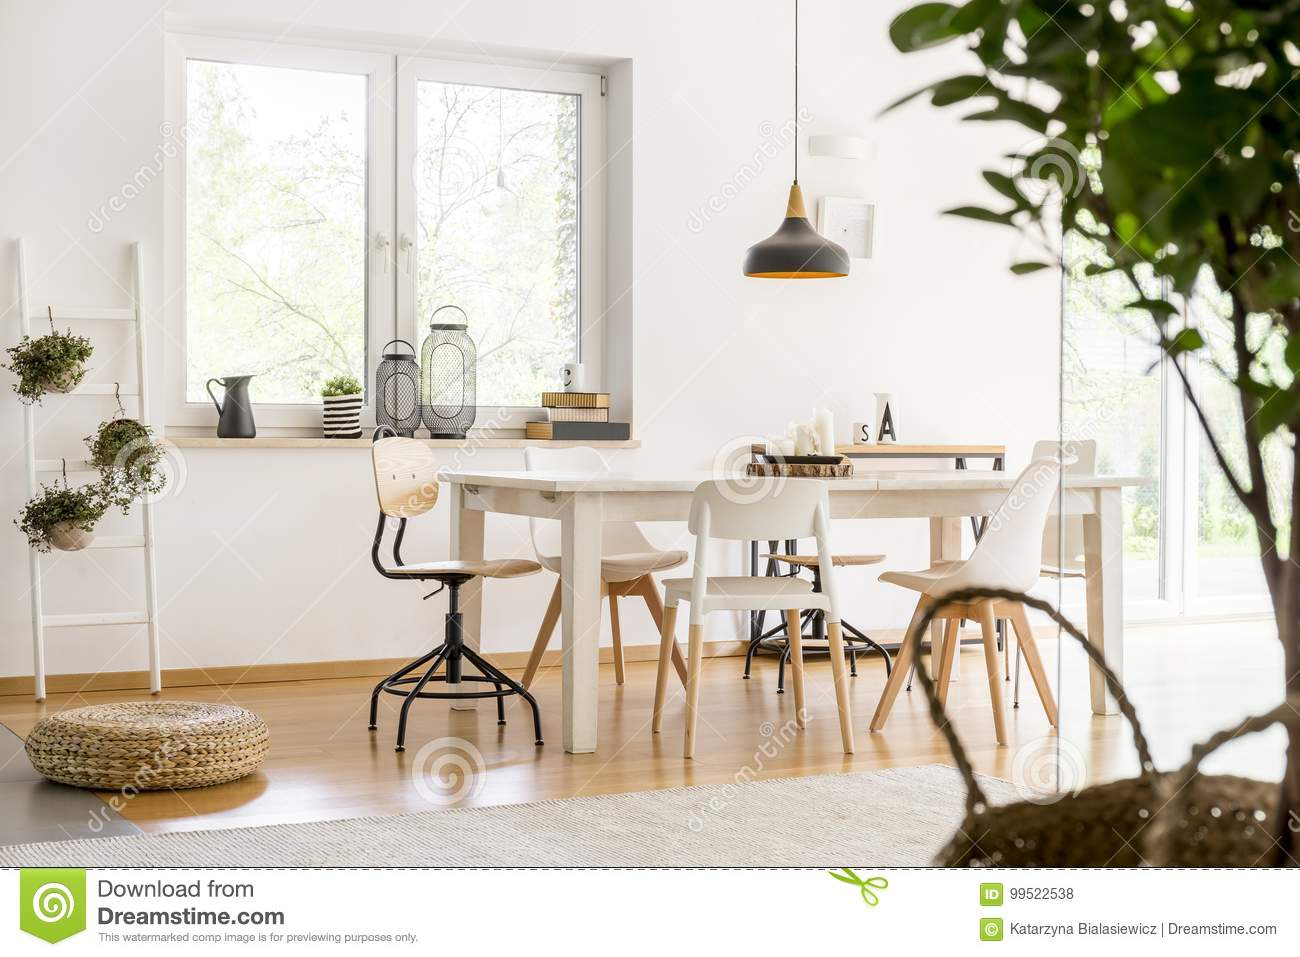 Dining Room With Braided Pouf Stock Photo Image Of Furniture Arrangement 99522538